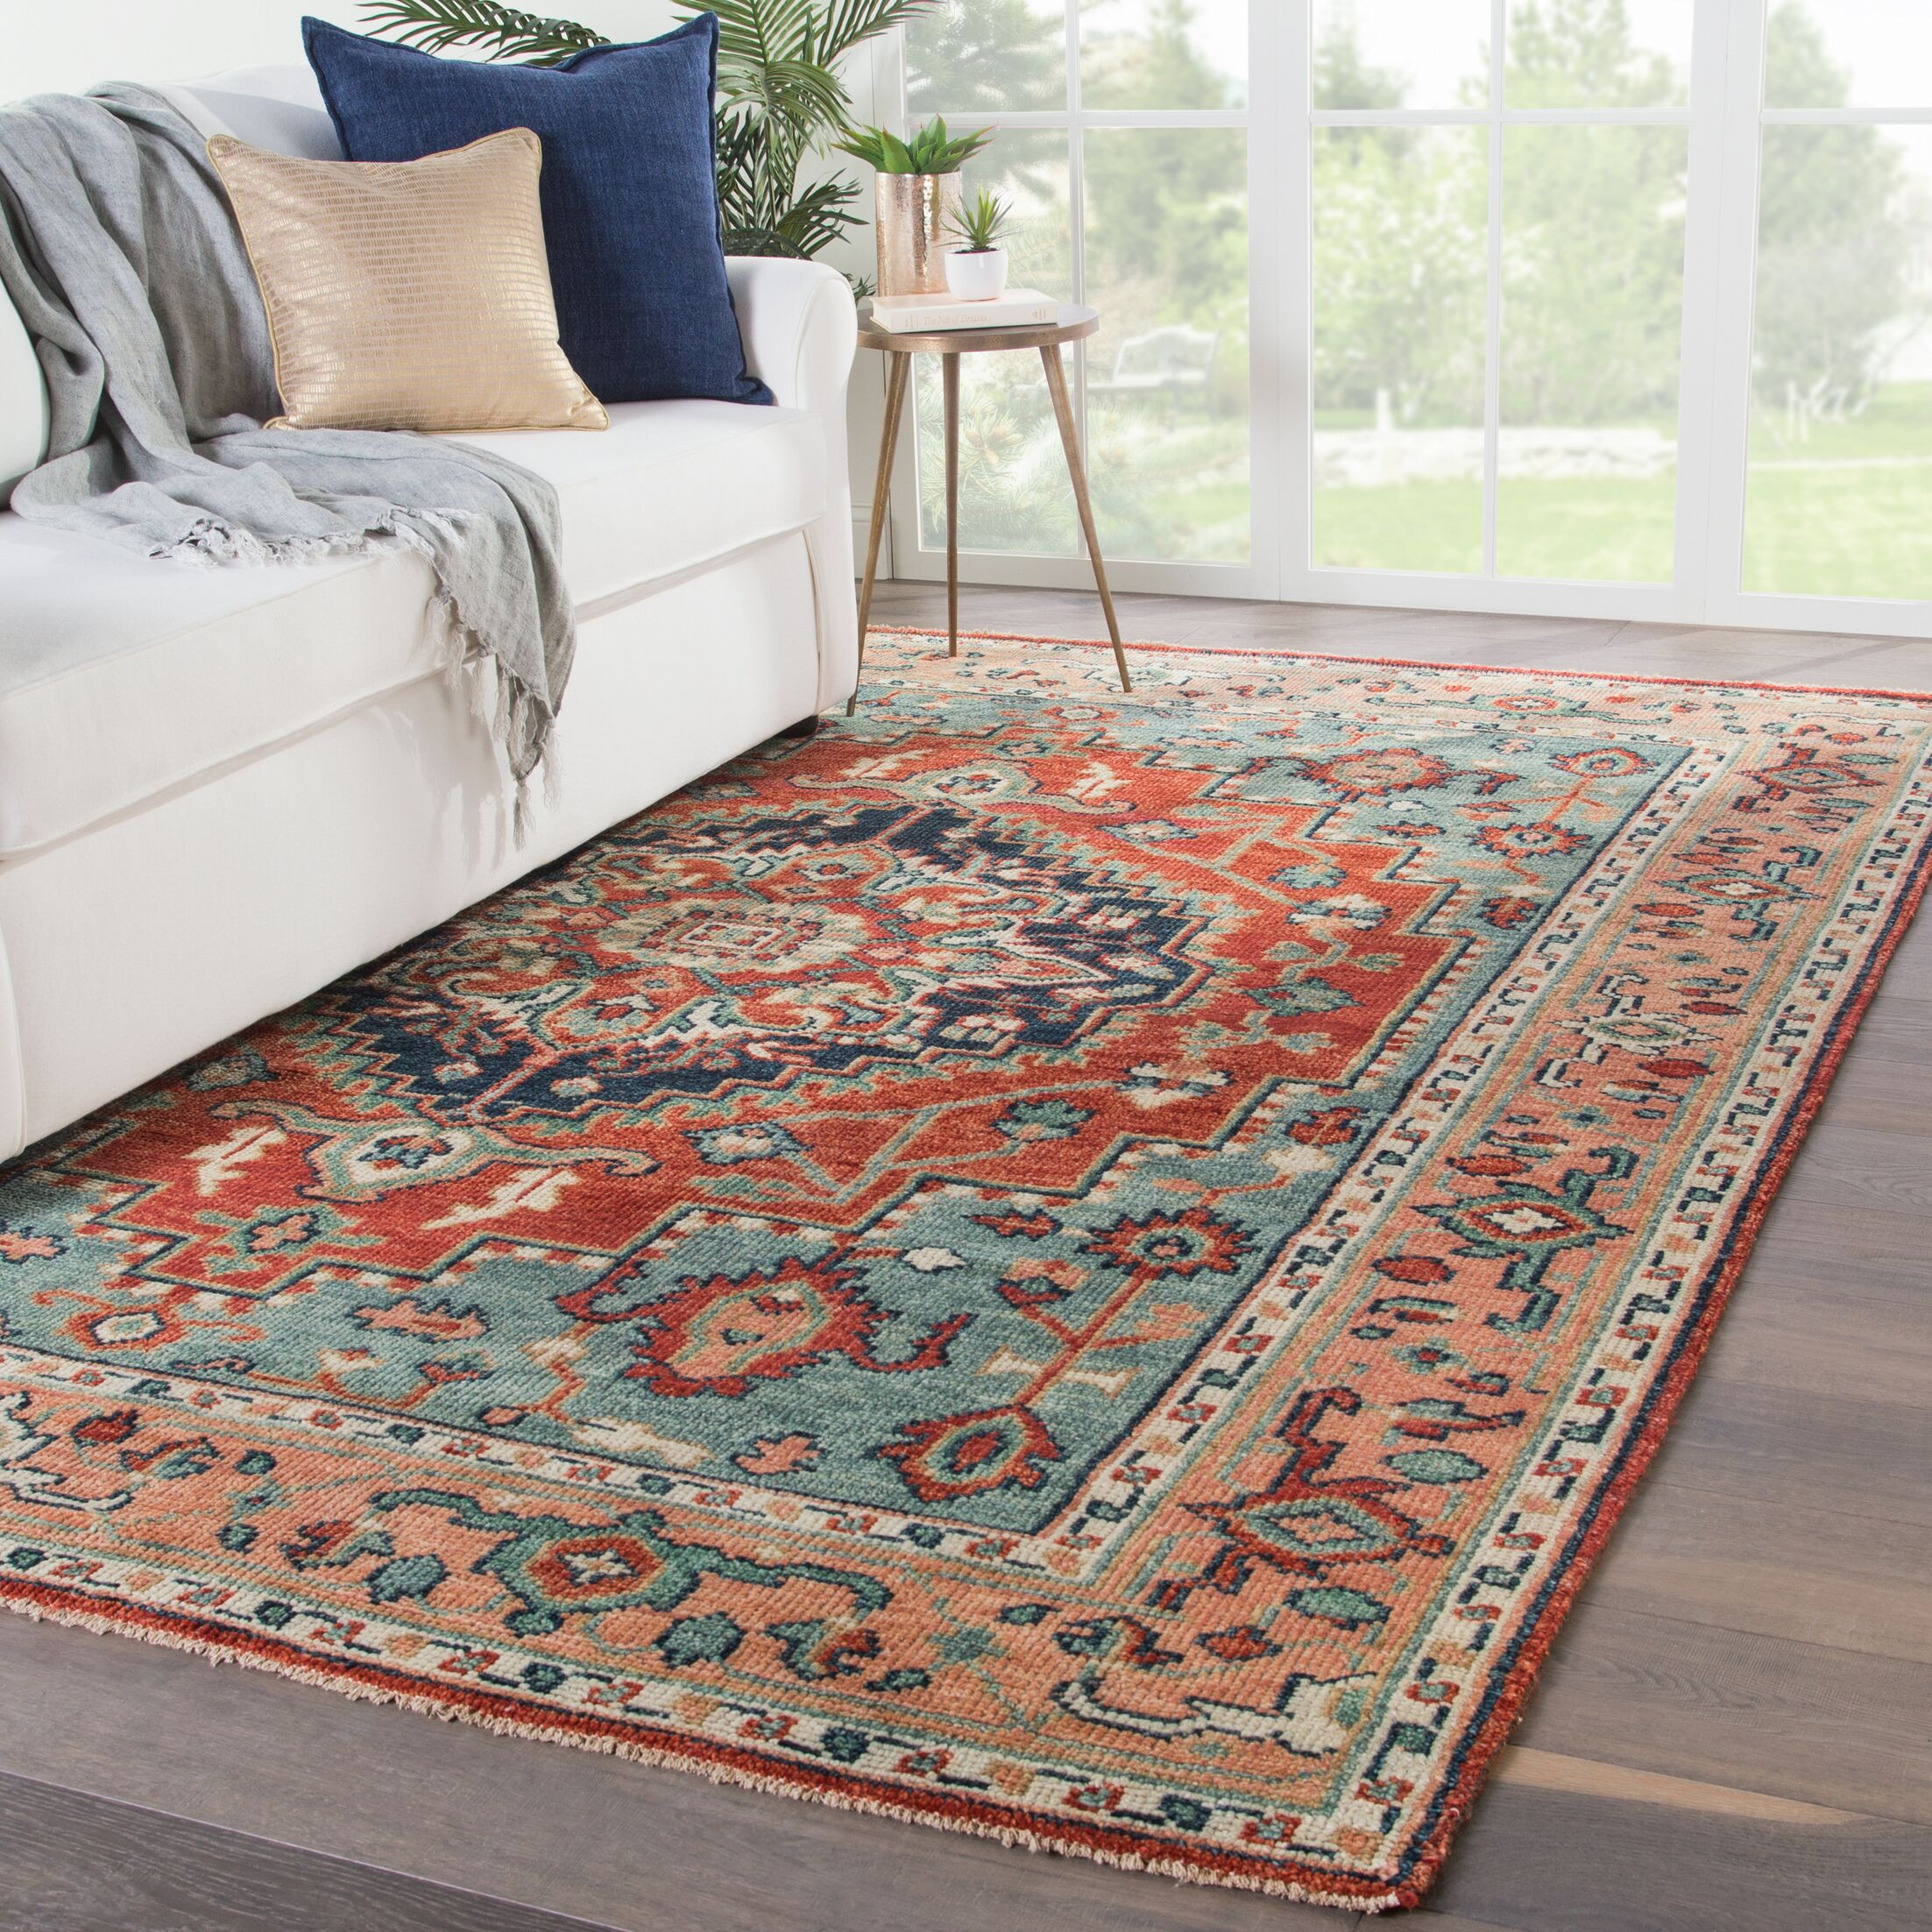 Ed Hand-Knotted Wool Red/Blue Area Rug Rug Size: Rectangle 6' x 9'